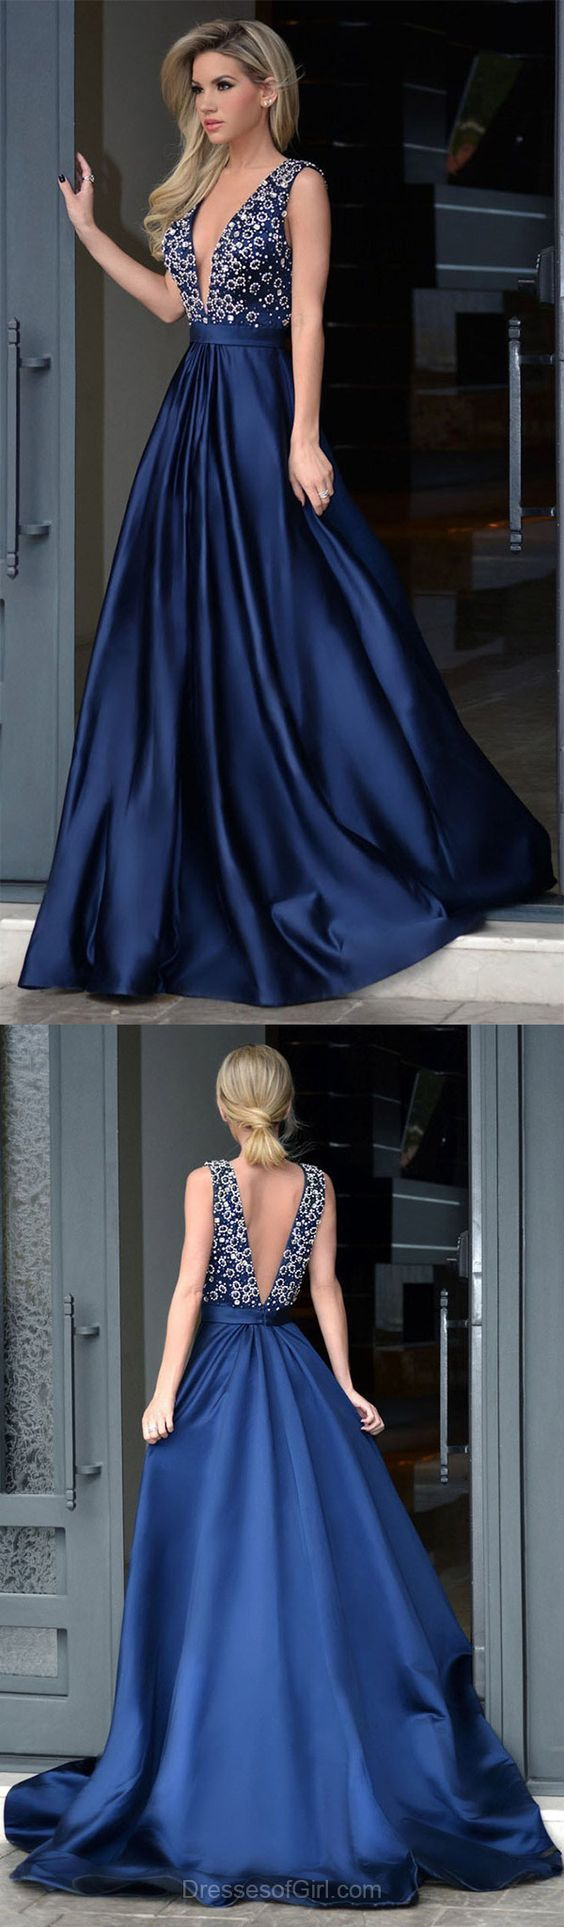 Beading Prom Dresses,A Line Prom Dress with V Back,Long Formal Party Gown,70109